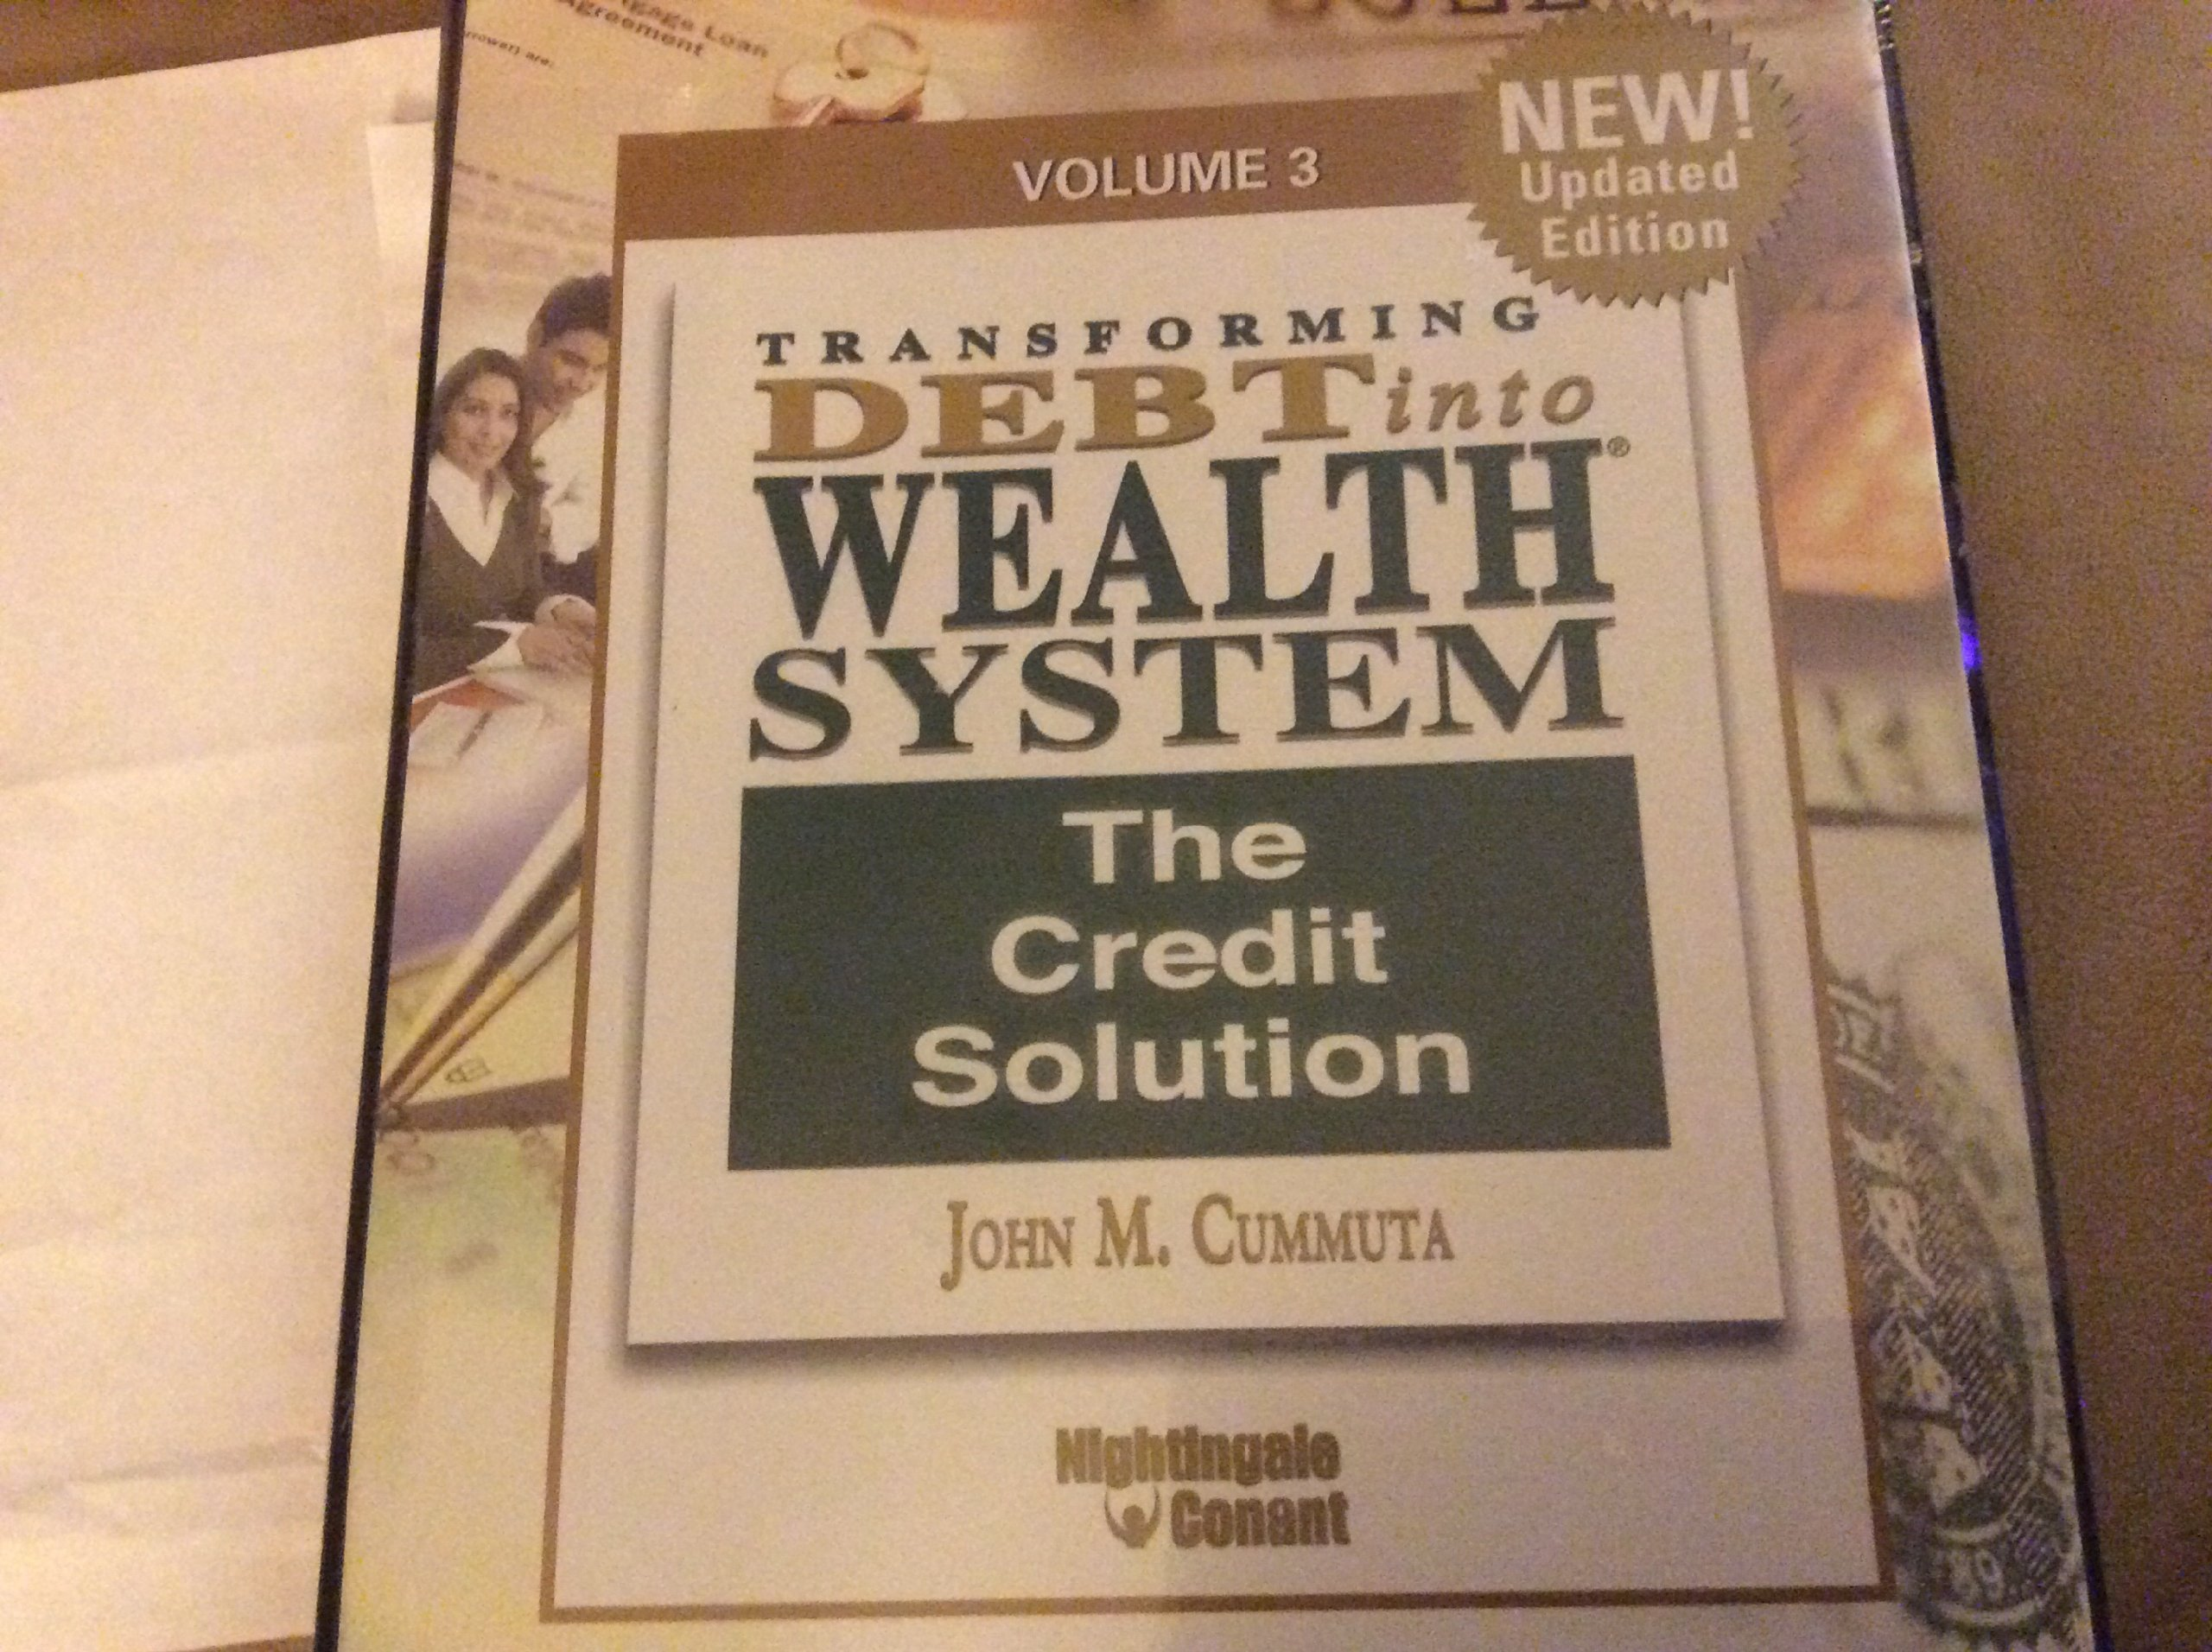 How to Transform Debt Into Wealth